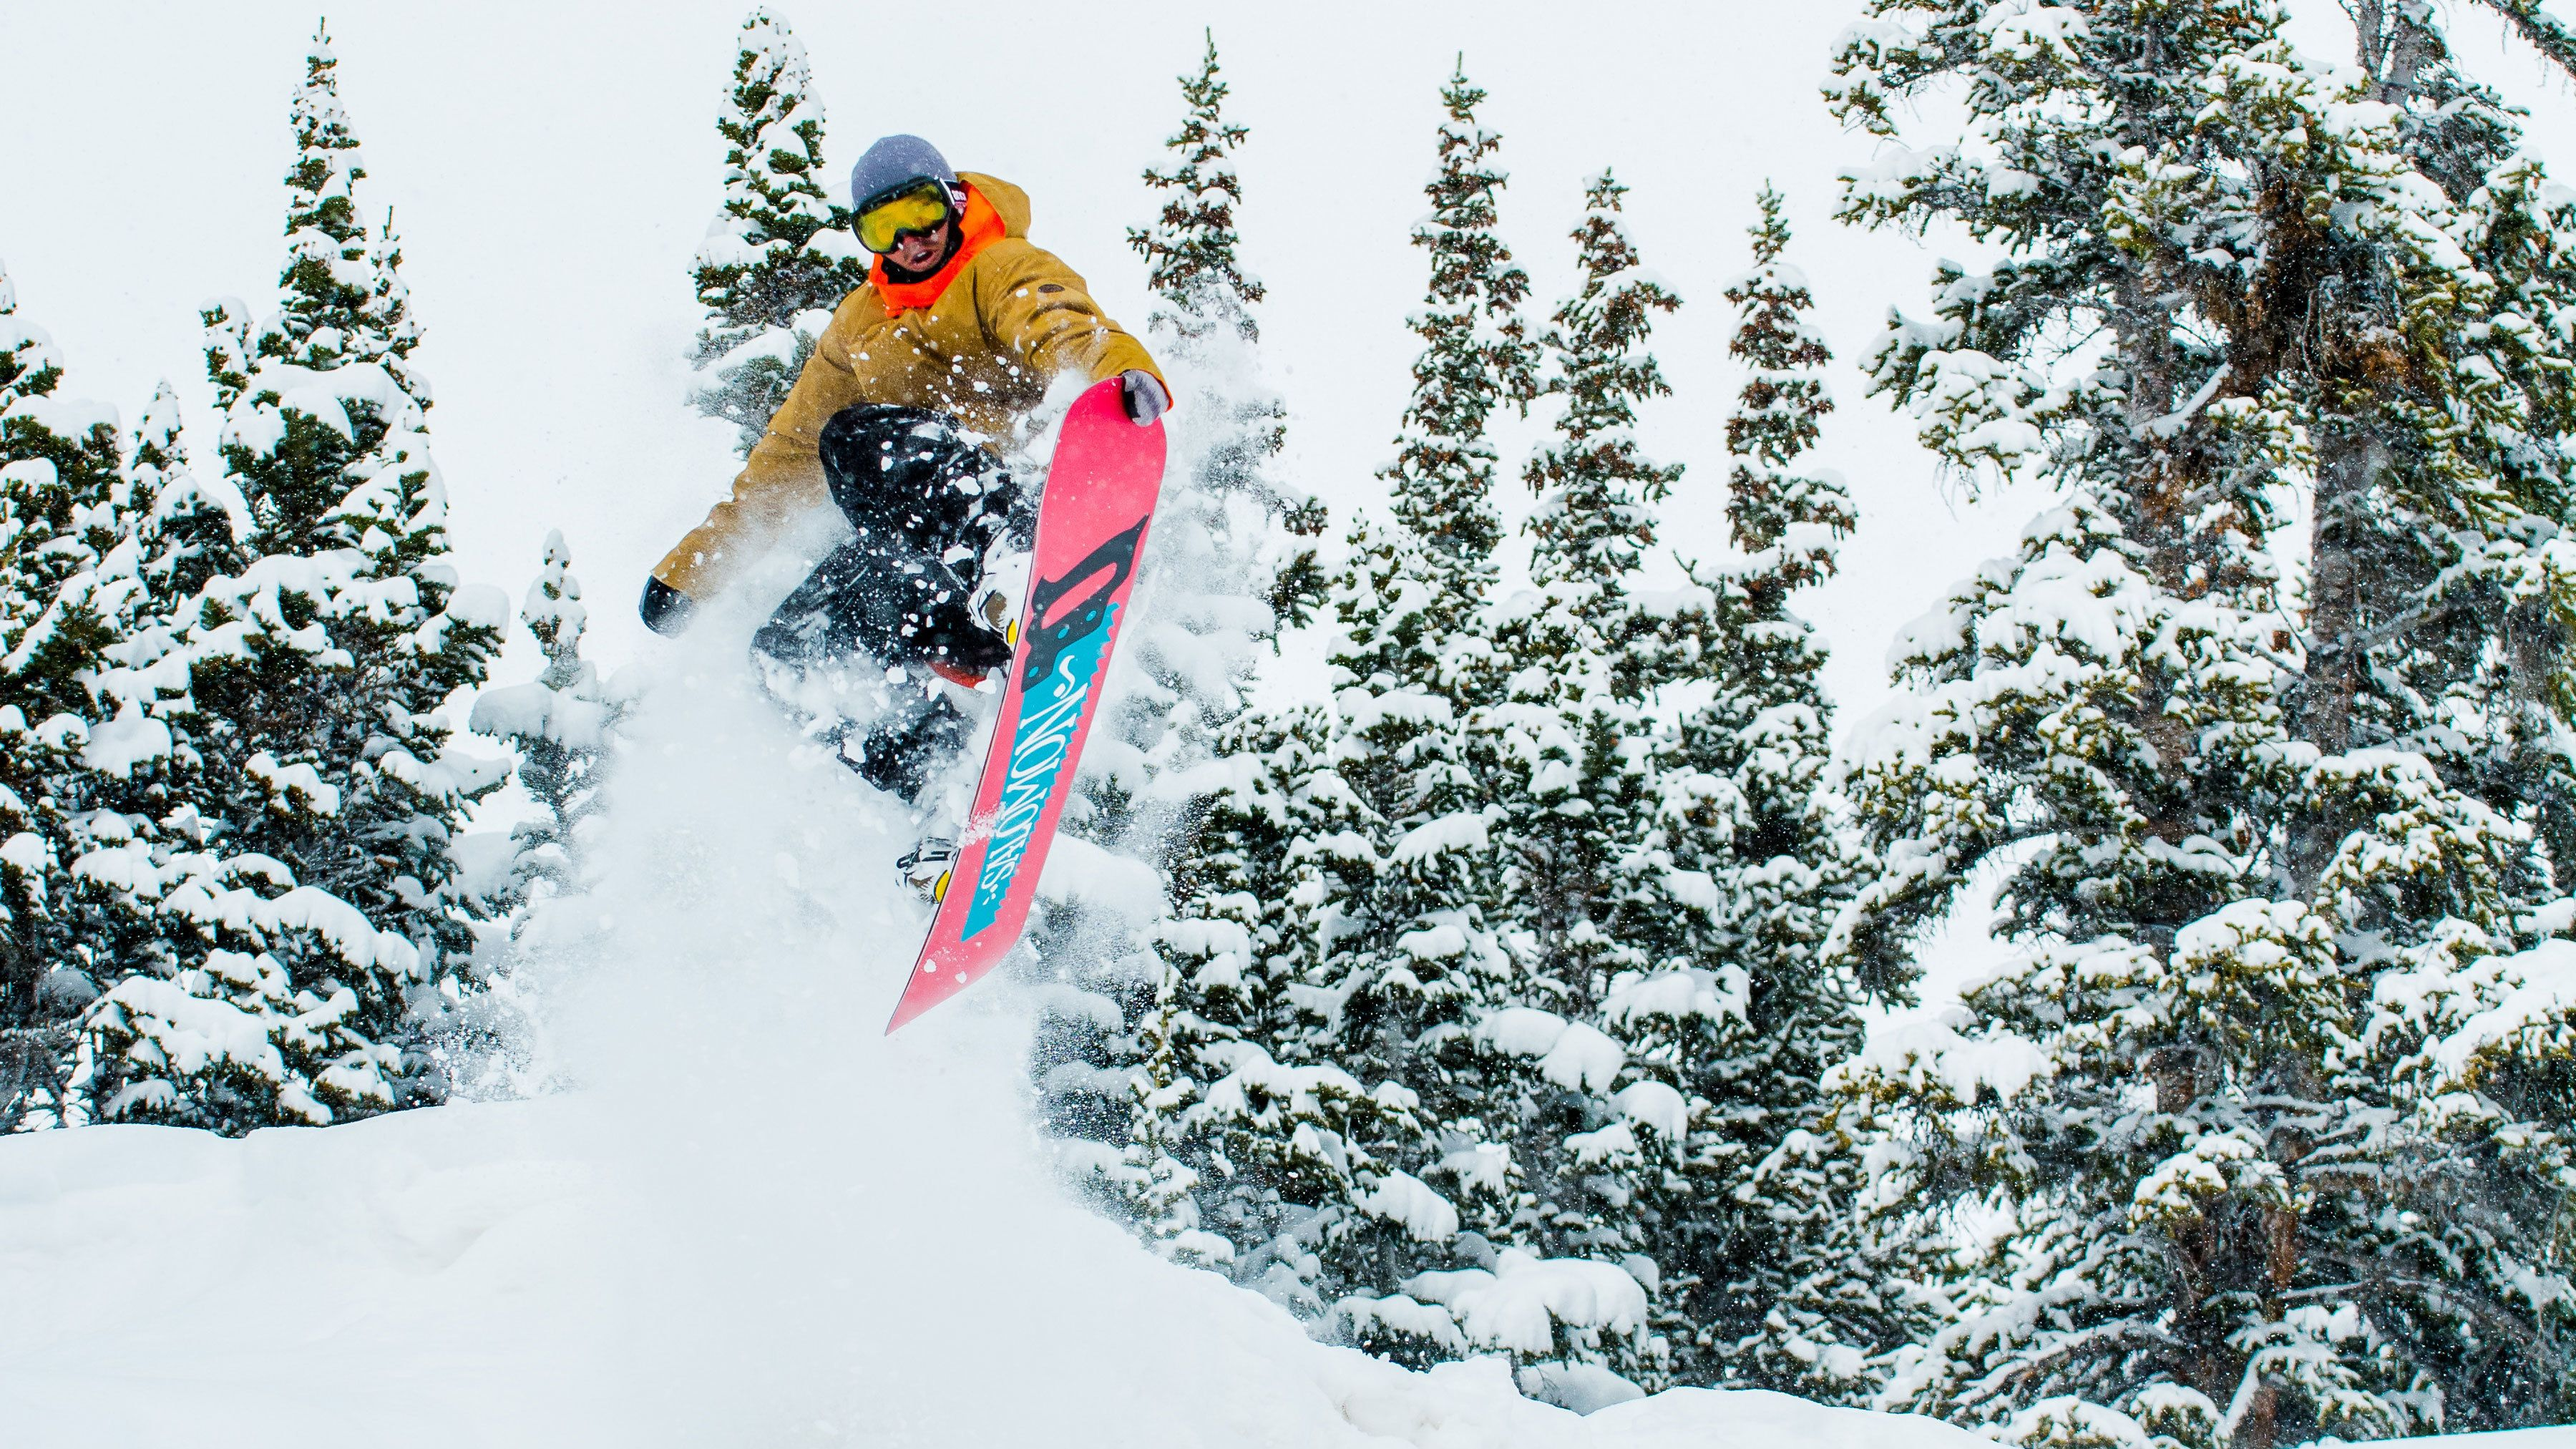 Snowboarder going off a jump